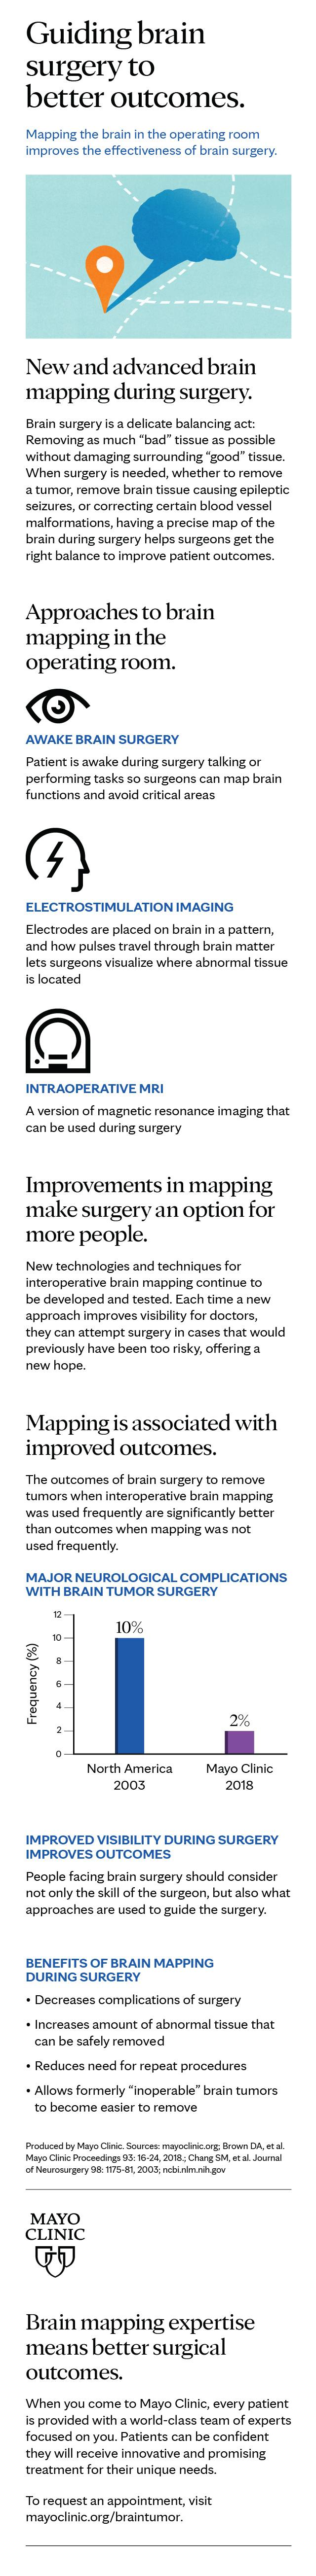 Infographic about brain surgery and brain mapping